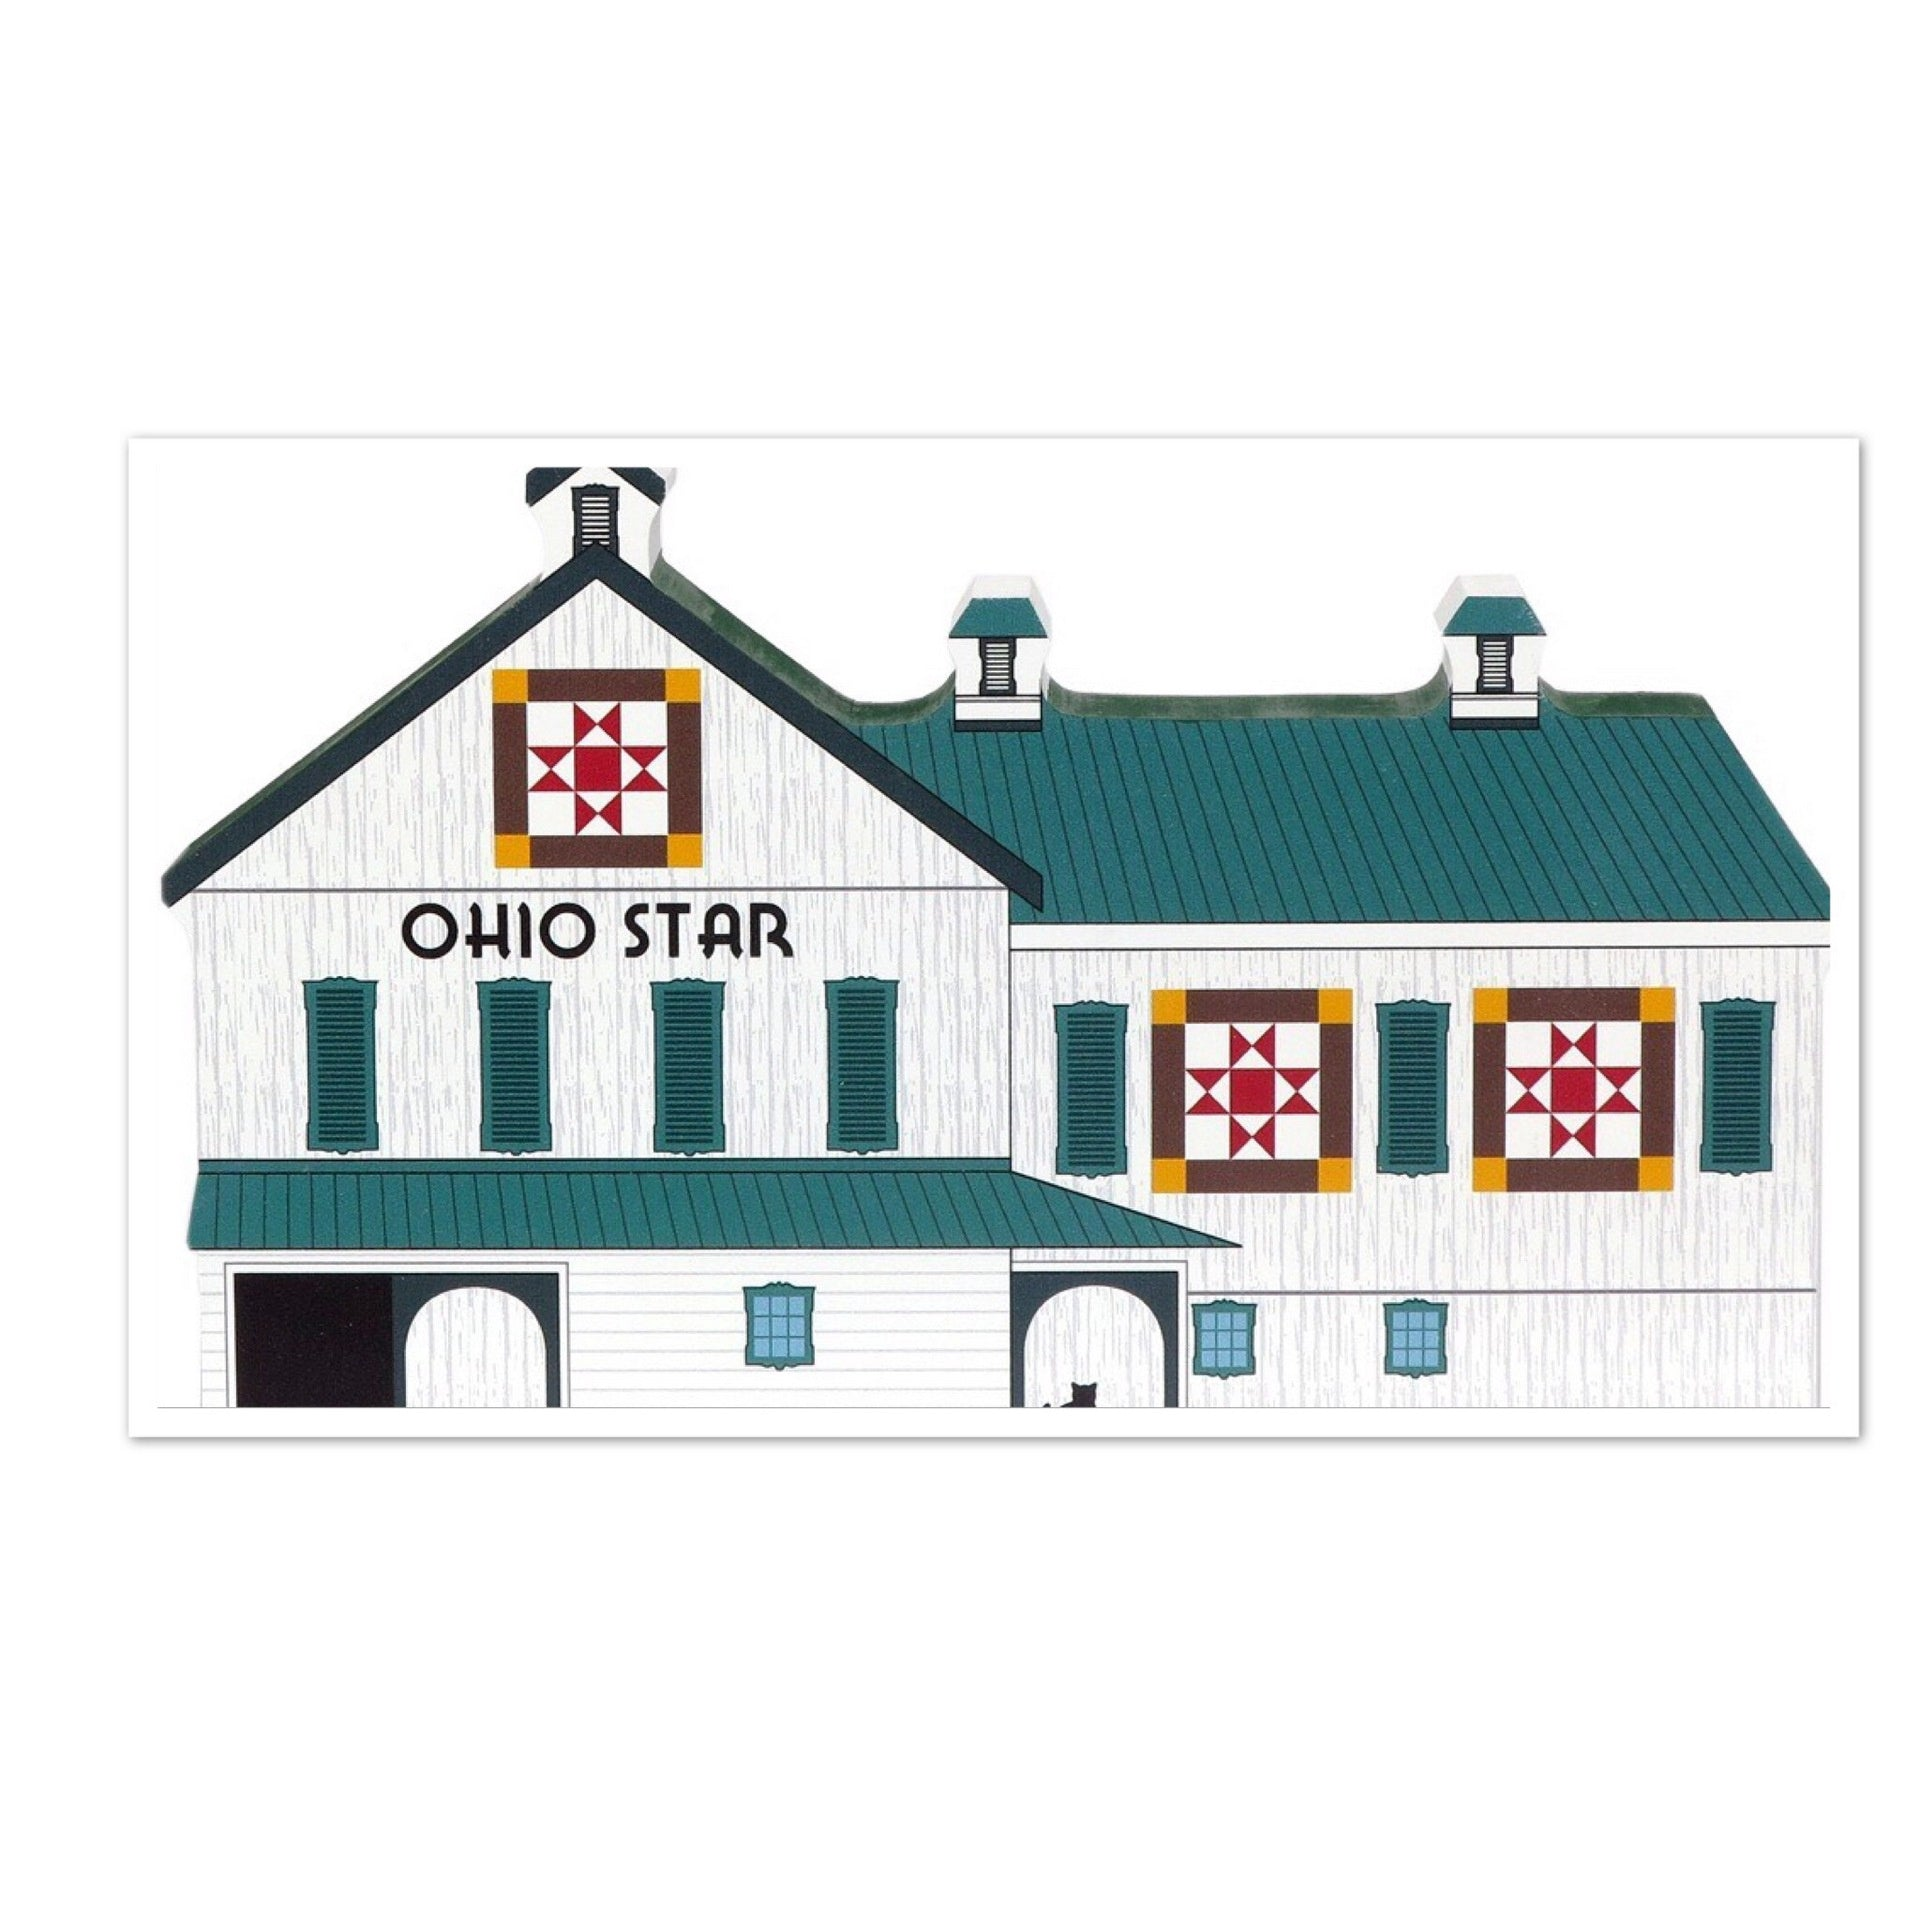 Ohio Star Quilt Barn Wood Shelf Sitter - Celebrate Local, Shop The Best of Ohio